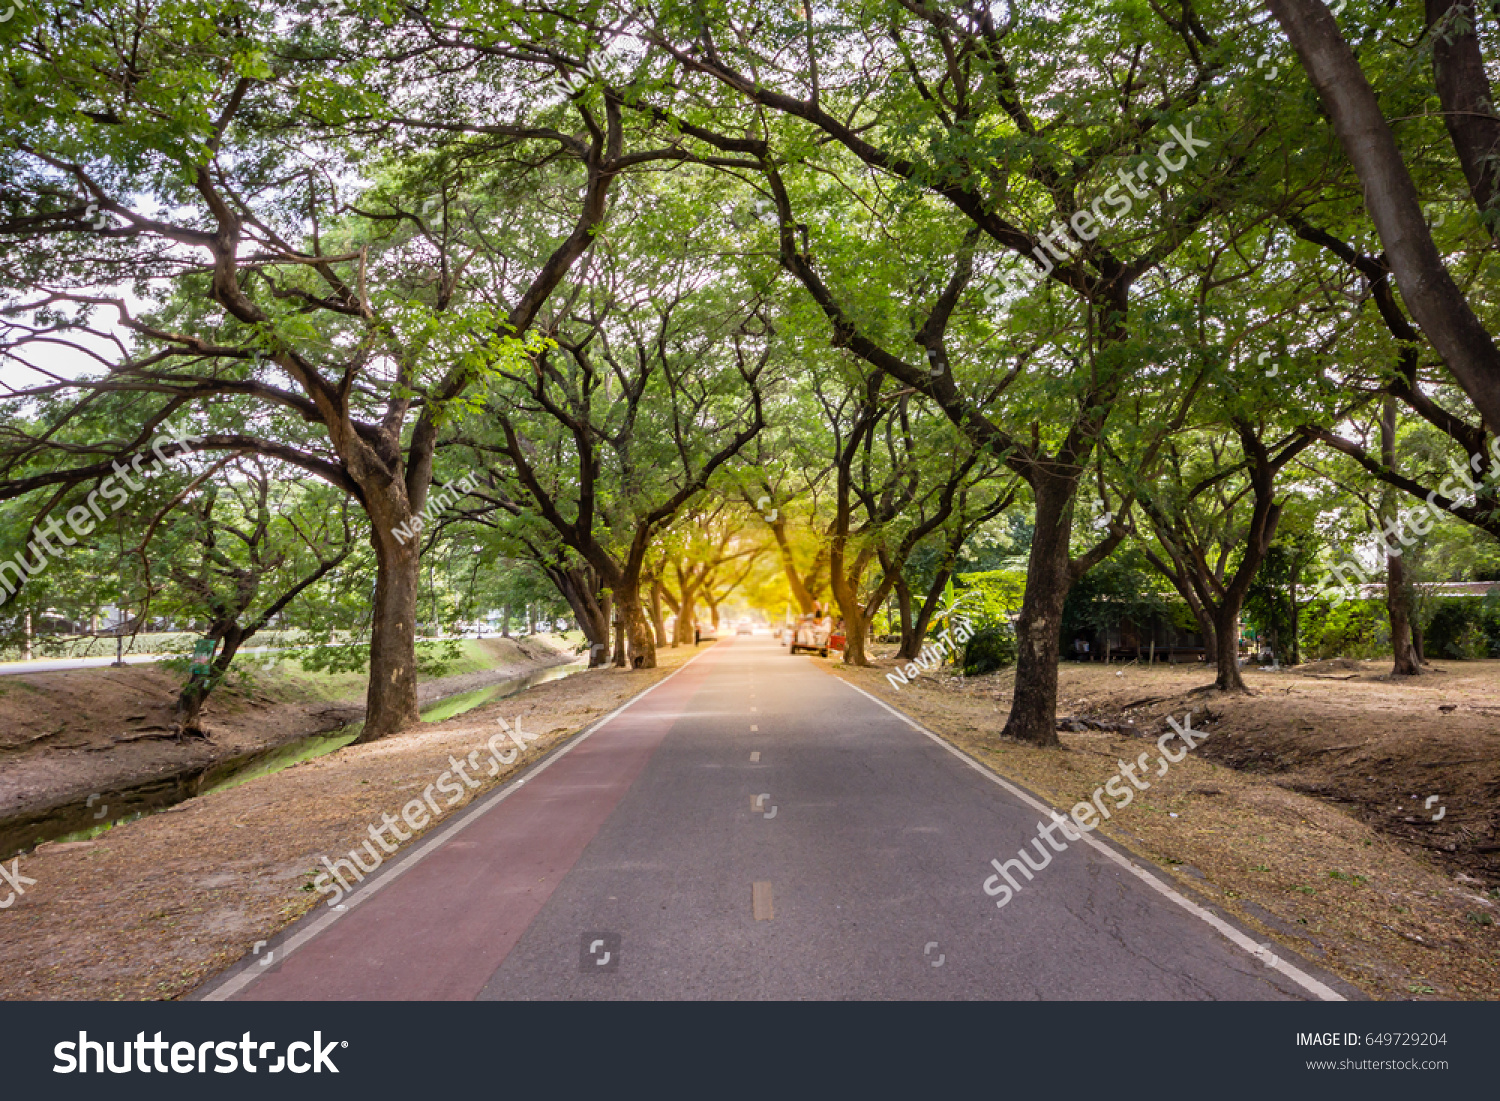 Landscape Straight Road Under Tunnel Trees Stock Photo 649729204 ... for Straight Road With Trees  155fiz